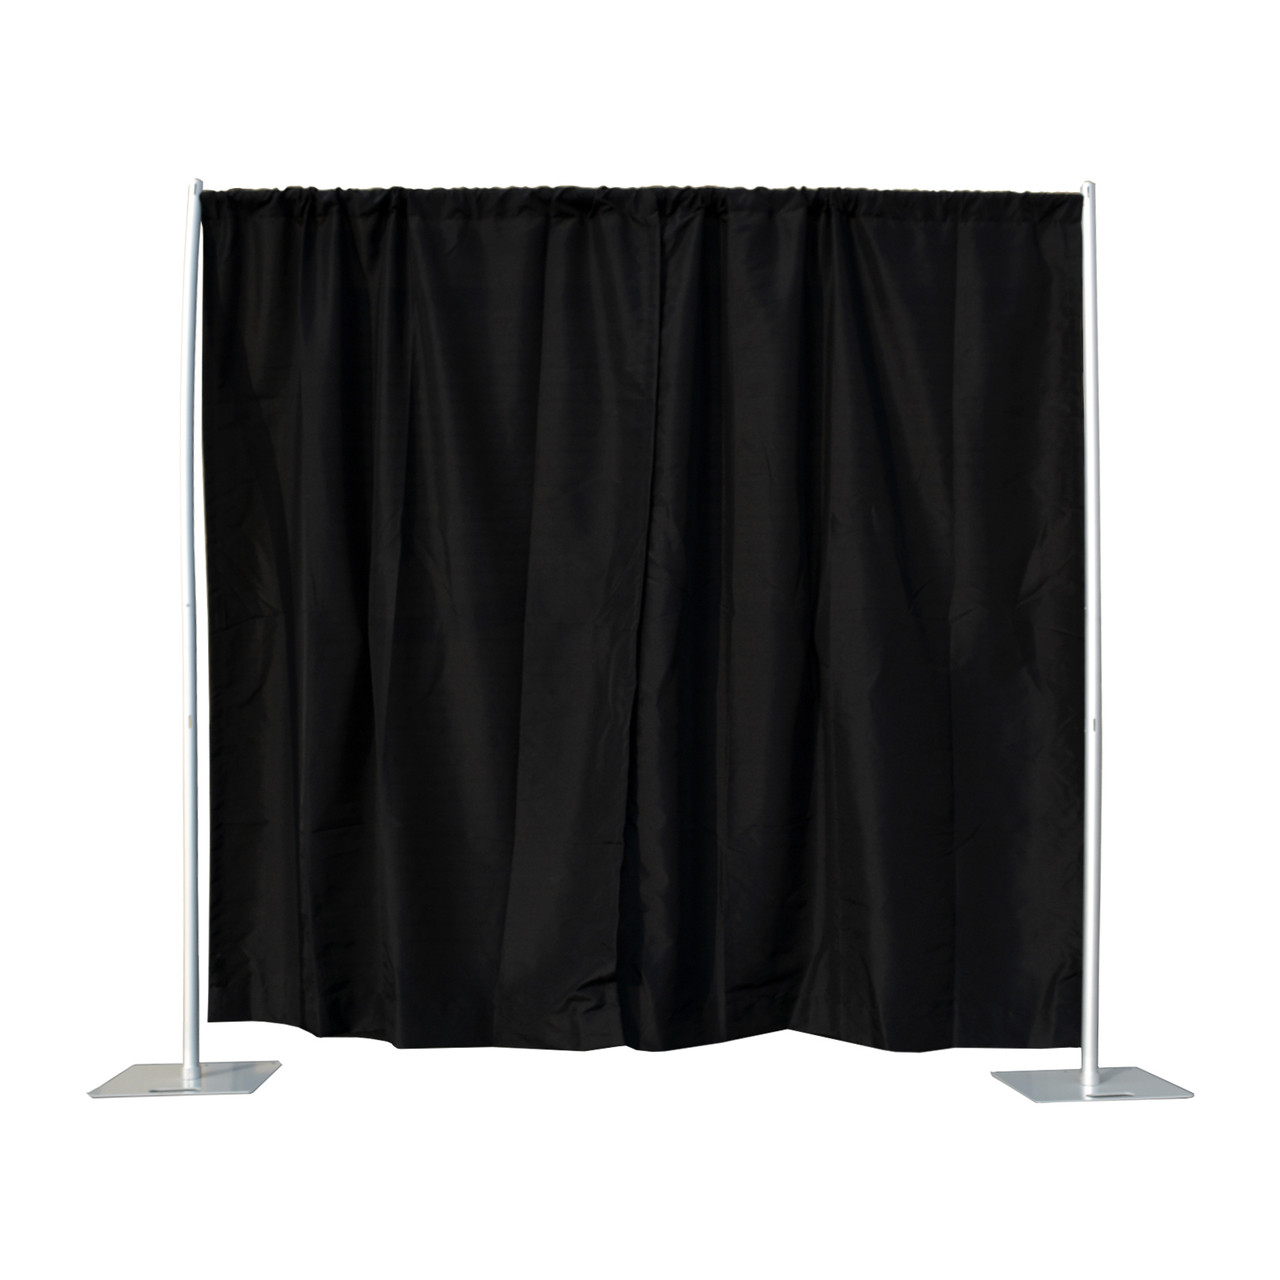 4-7ft Pipe and Drape Set up with lower crossbar  sc 1 st  PB Backdrops & 4-7ft Pipe and Drape Set up with lower crossbar - PB Backdrops